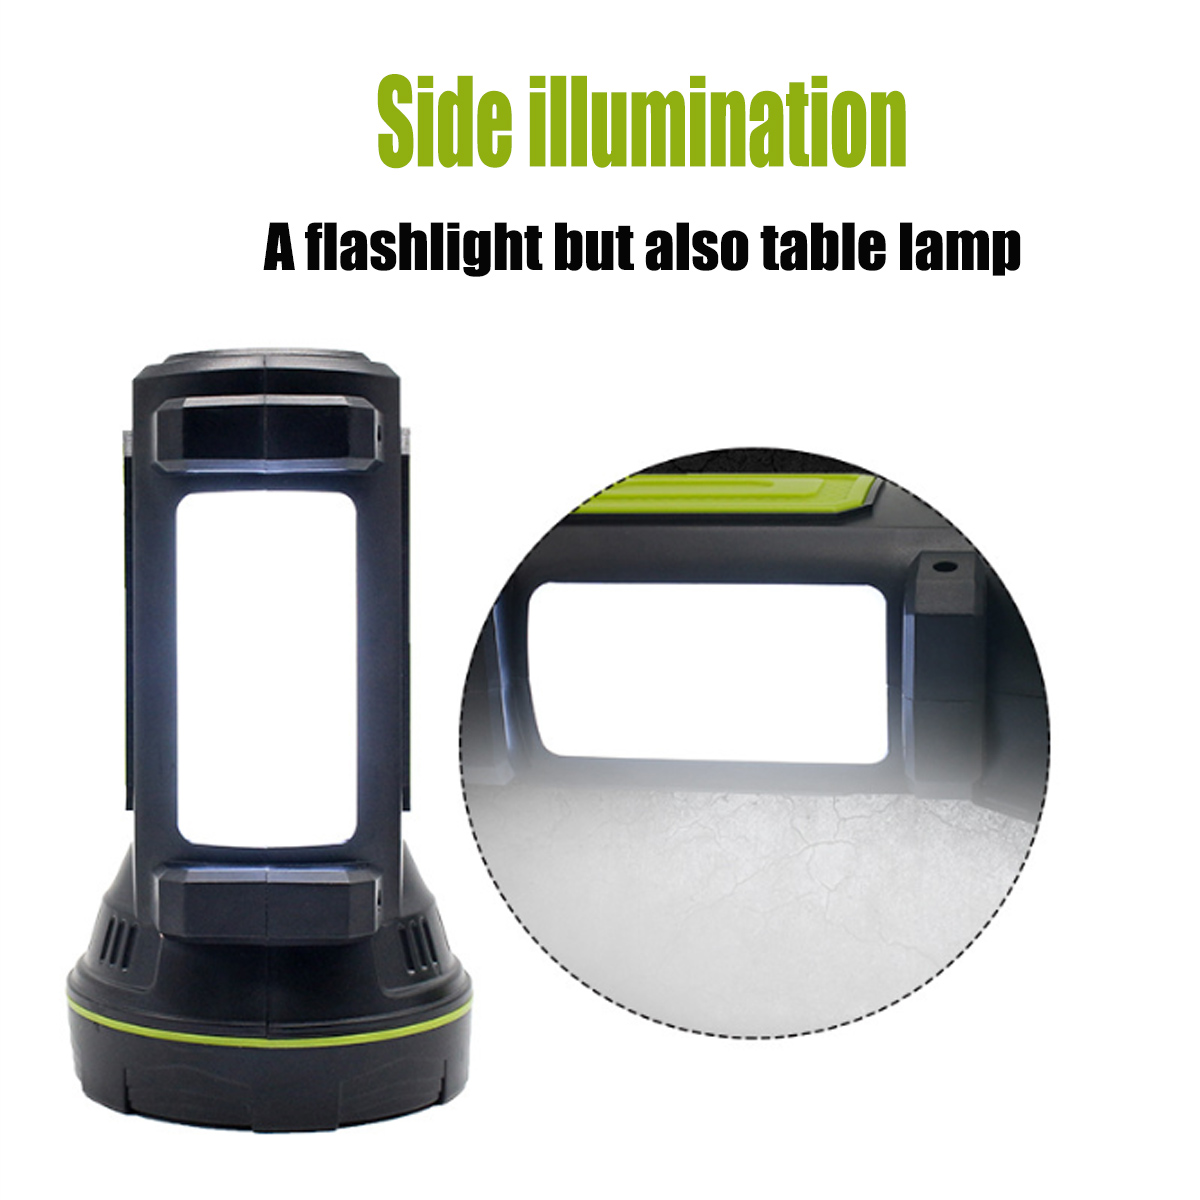 LED Portable Spotlight Lantern Searchlight Rechargeable Handheld High Power Portable Light for Outdoor Camping